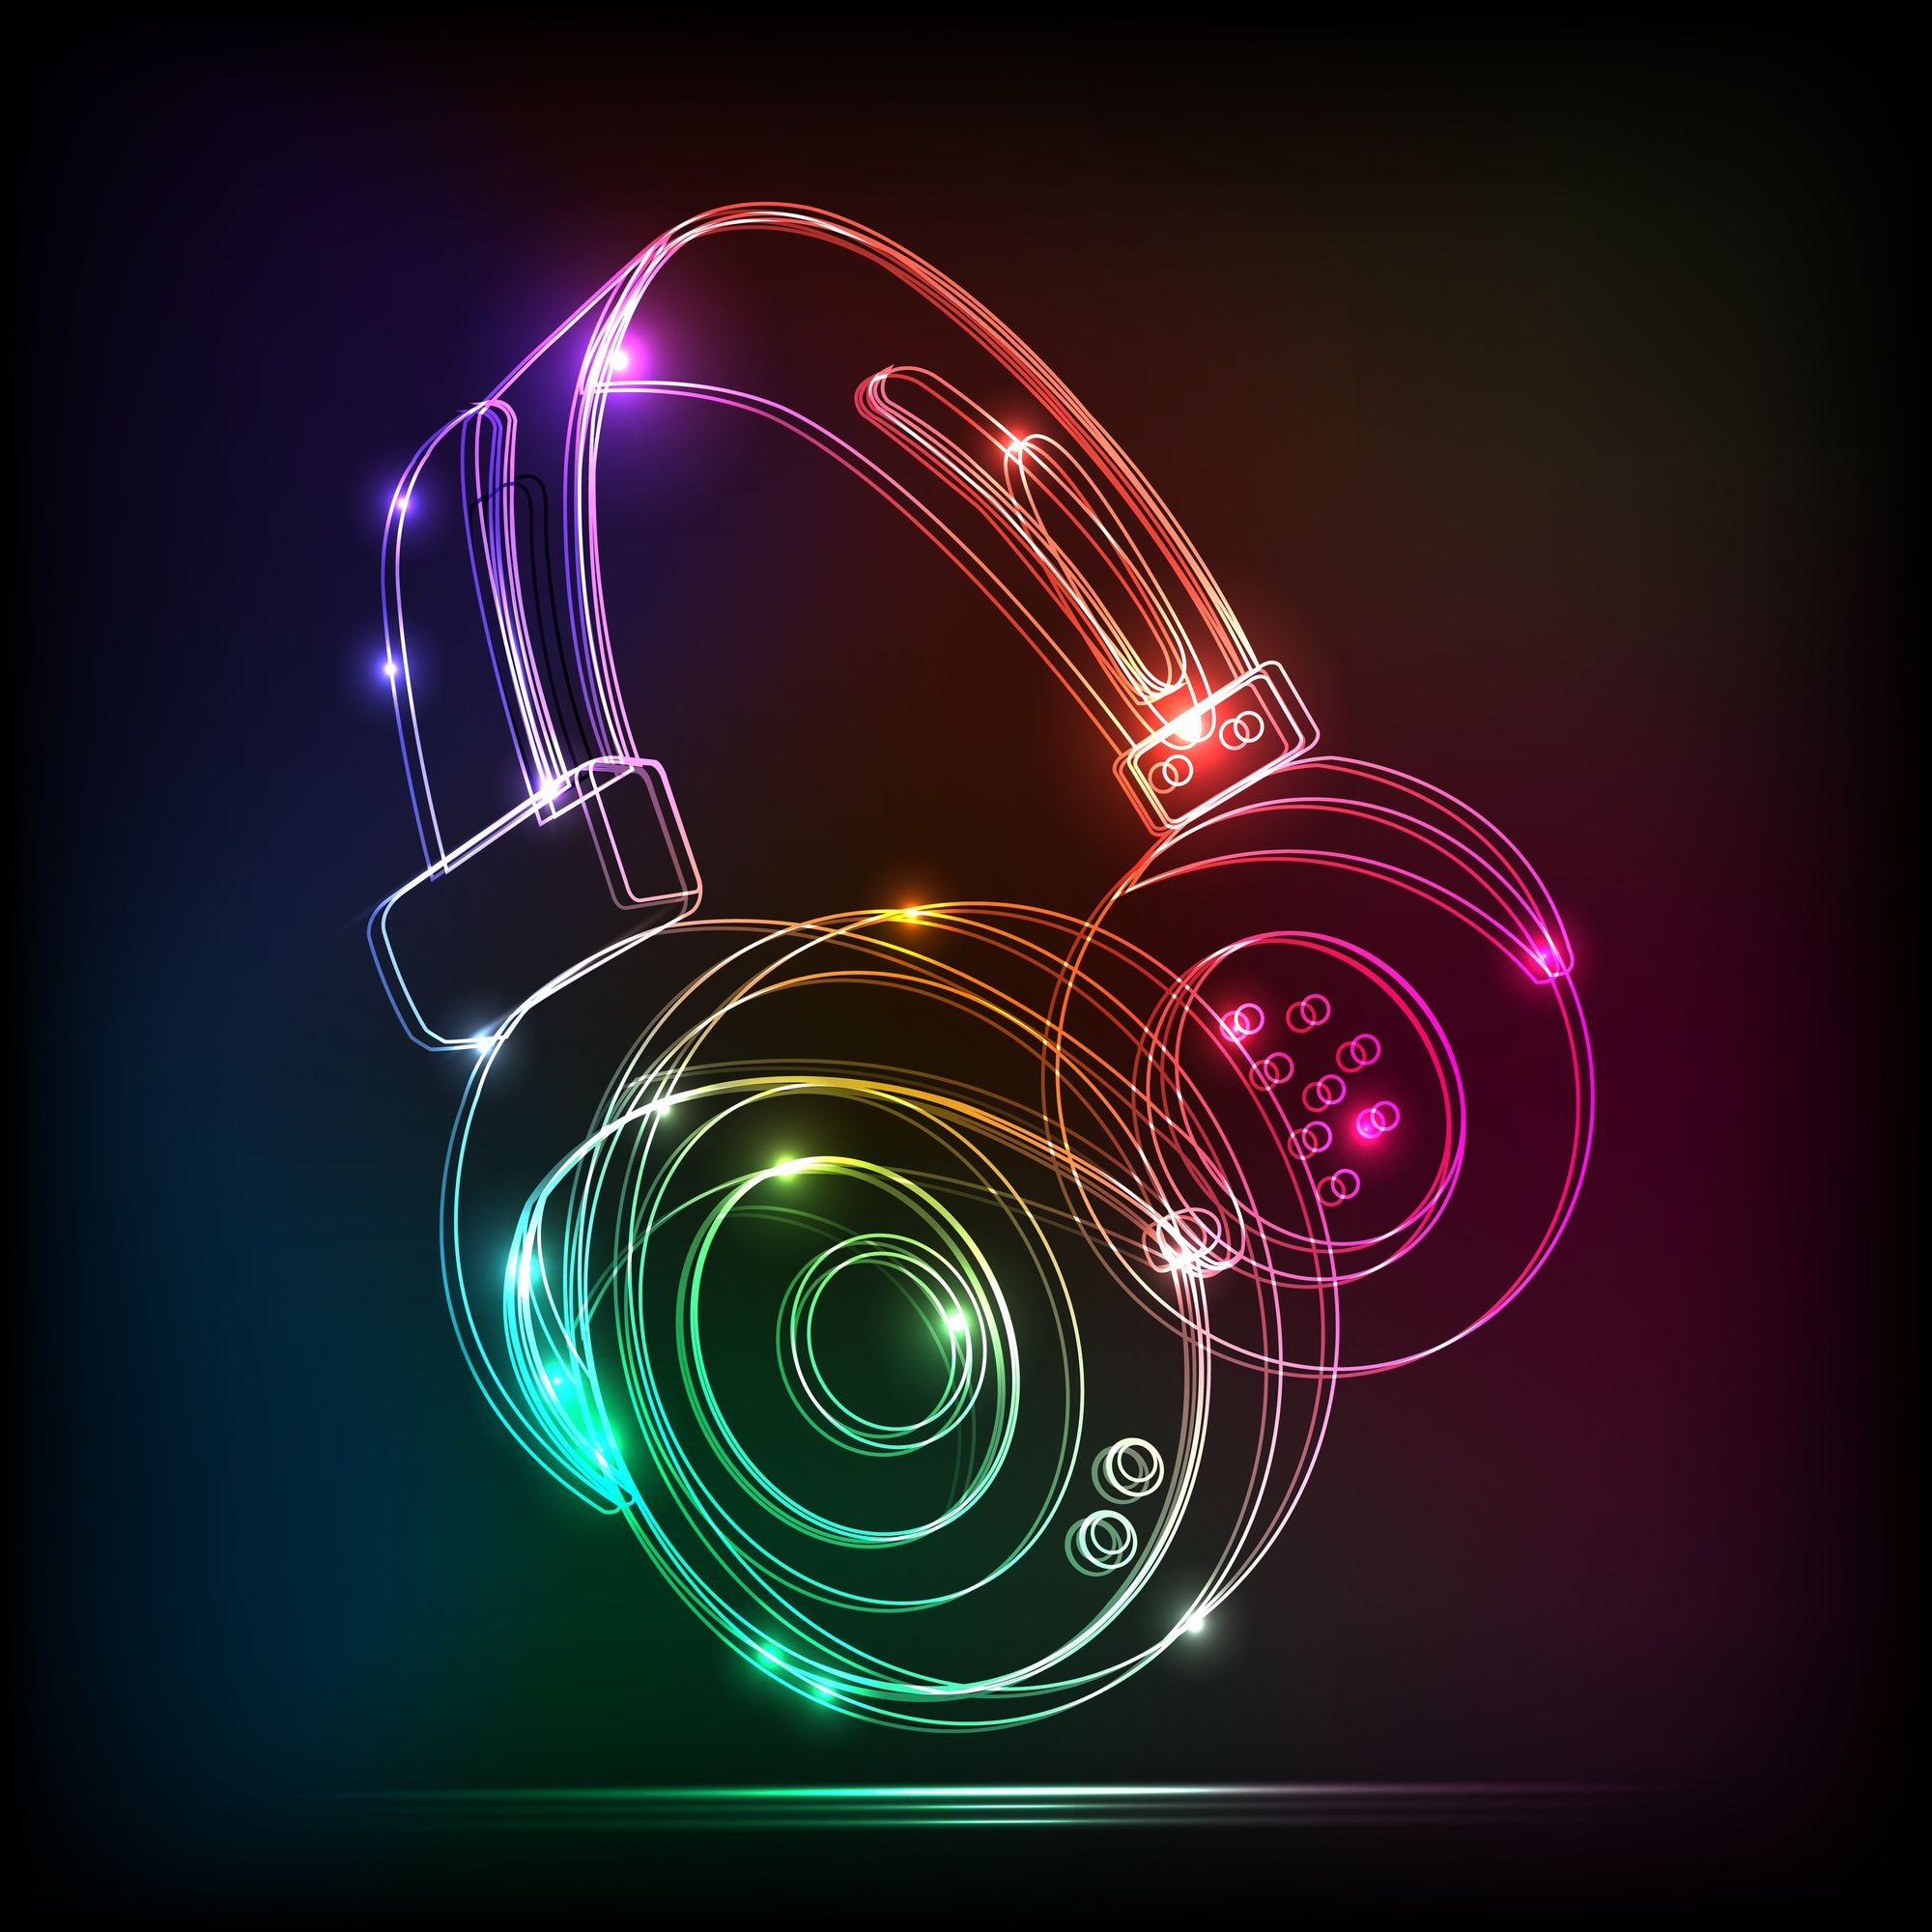 Cool Headphone | Singing Art and the Art of Music ...